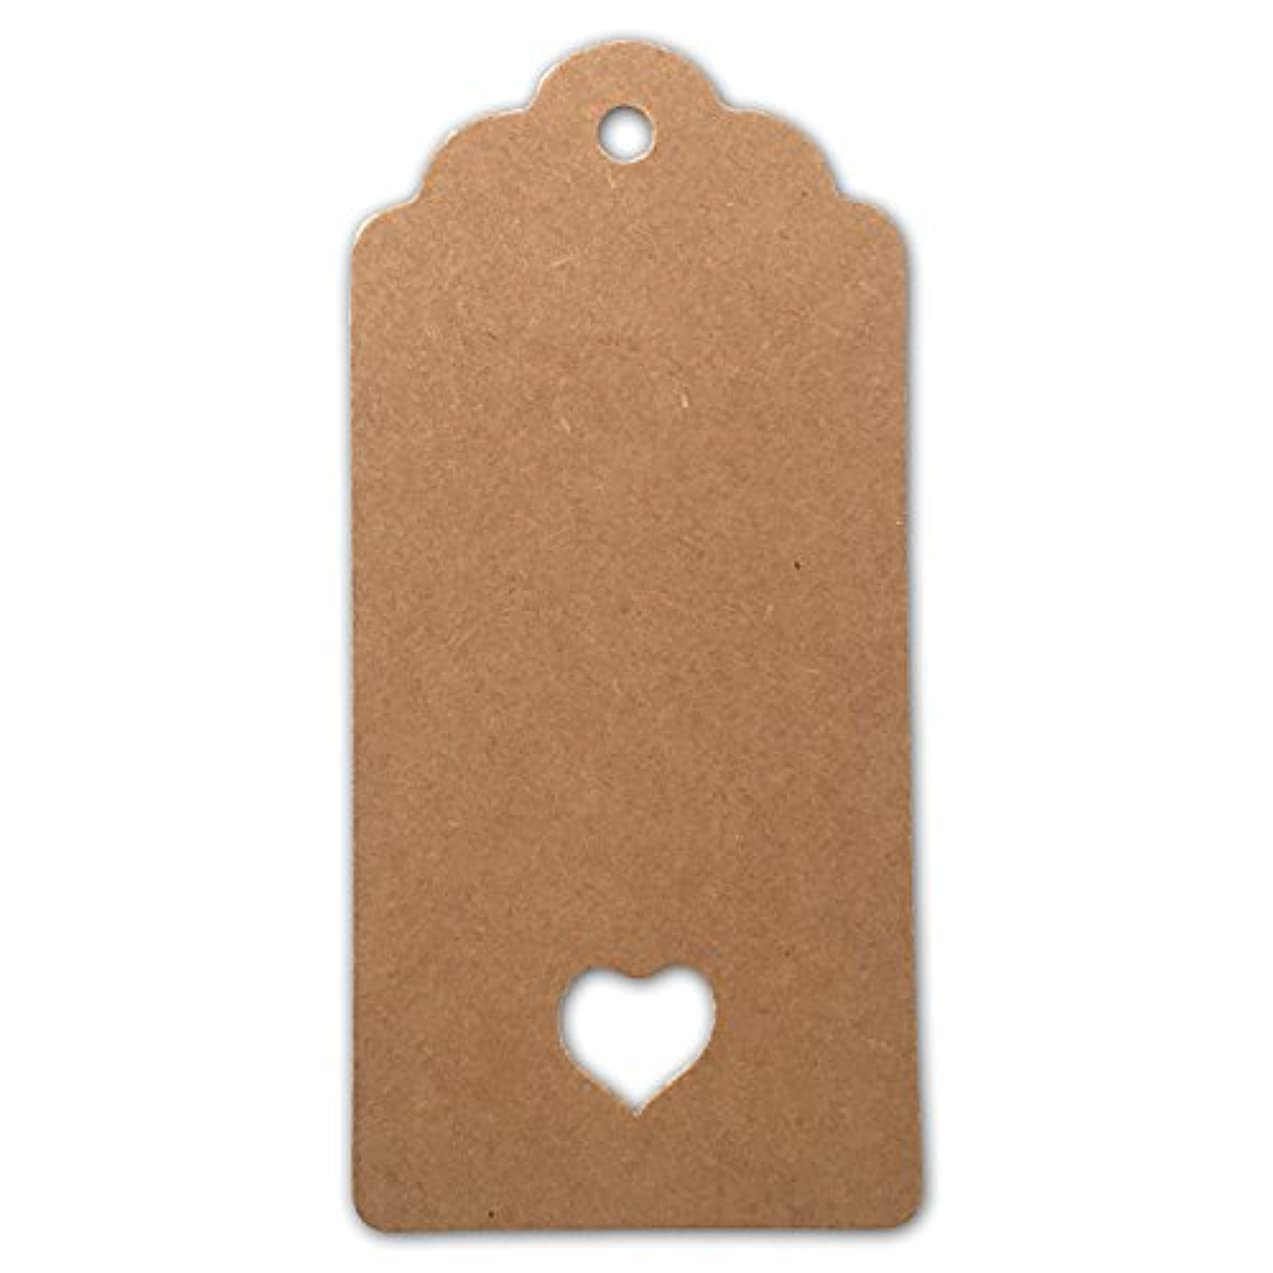 LWR Crafts 100 Hang Tags Scalloped Top Rectangle Heart with Jute Twines 100ft (3 3/4